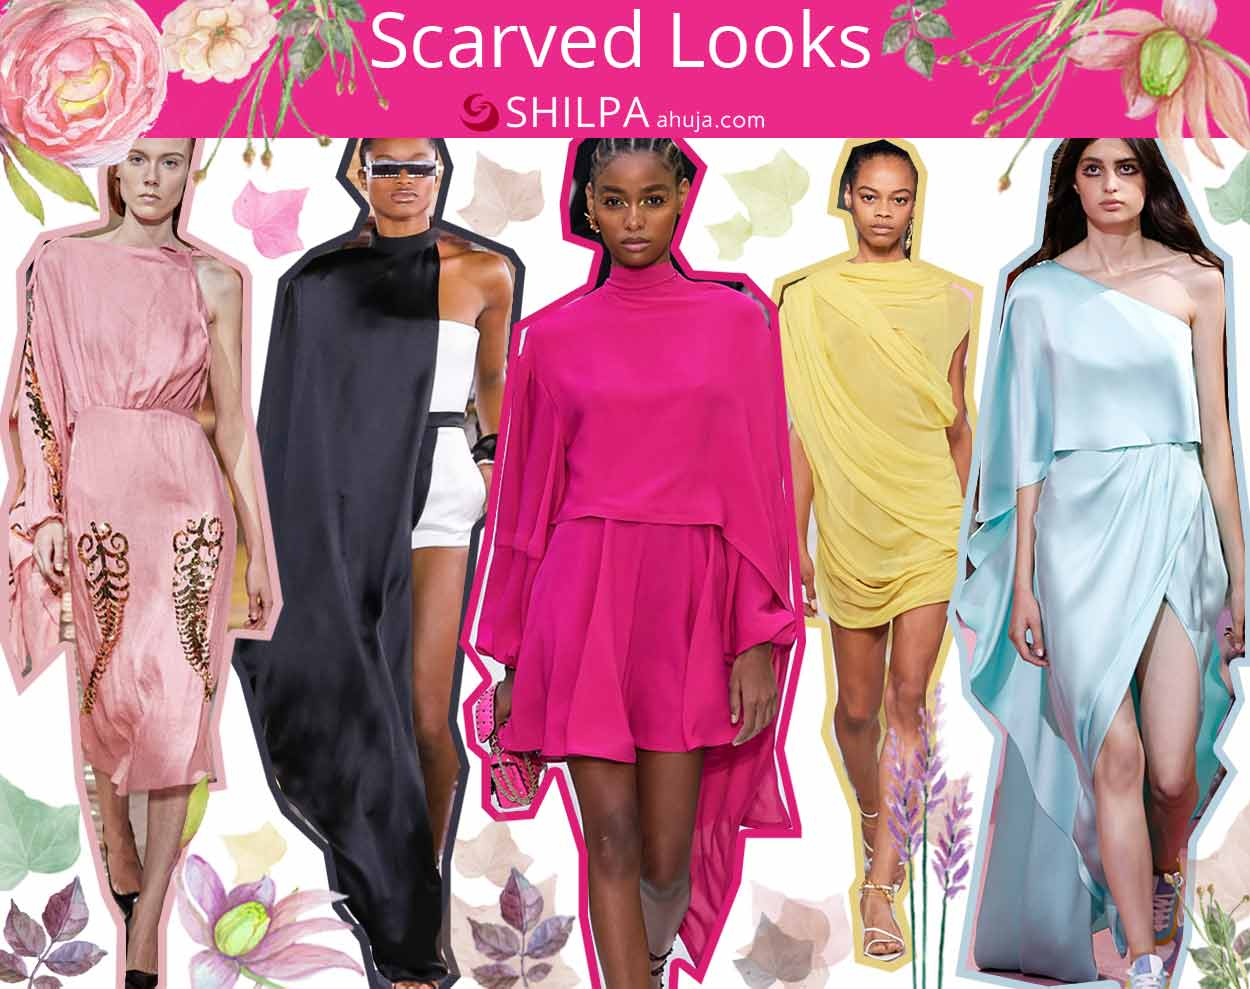 hot fashion trends spring summer 2020 scarved-dresses